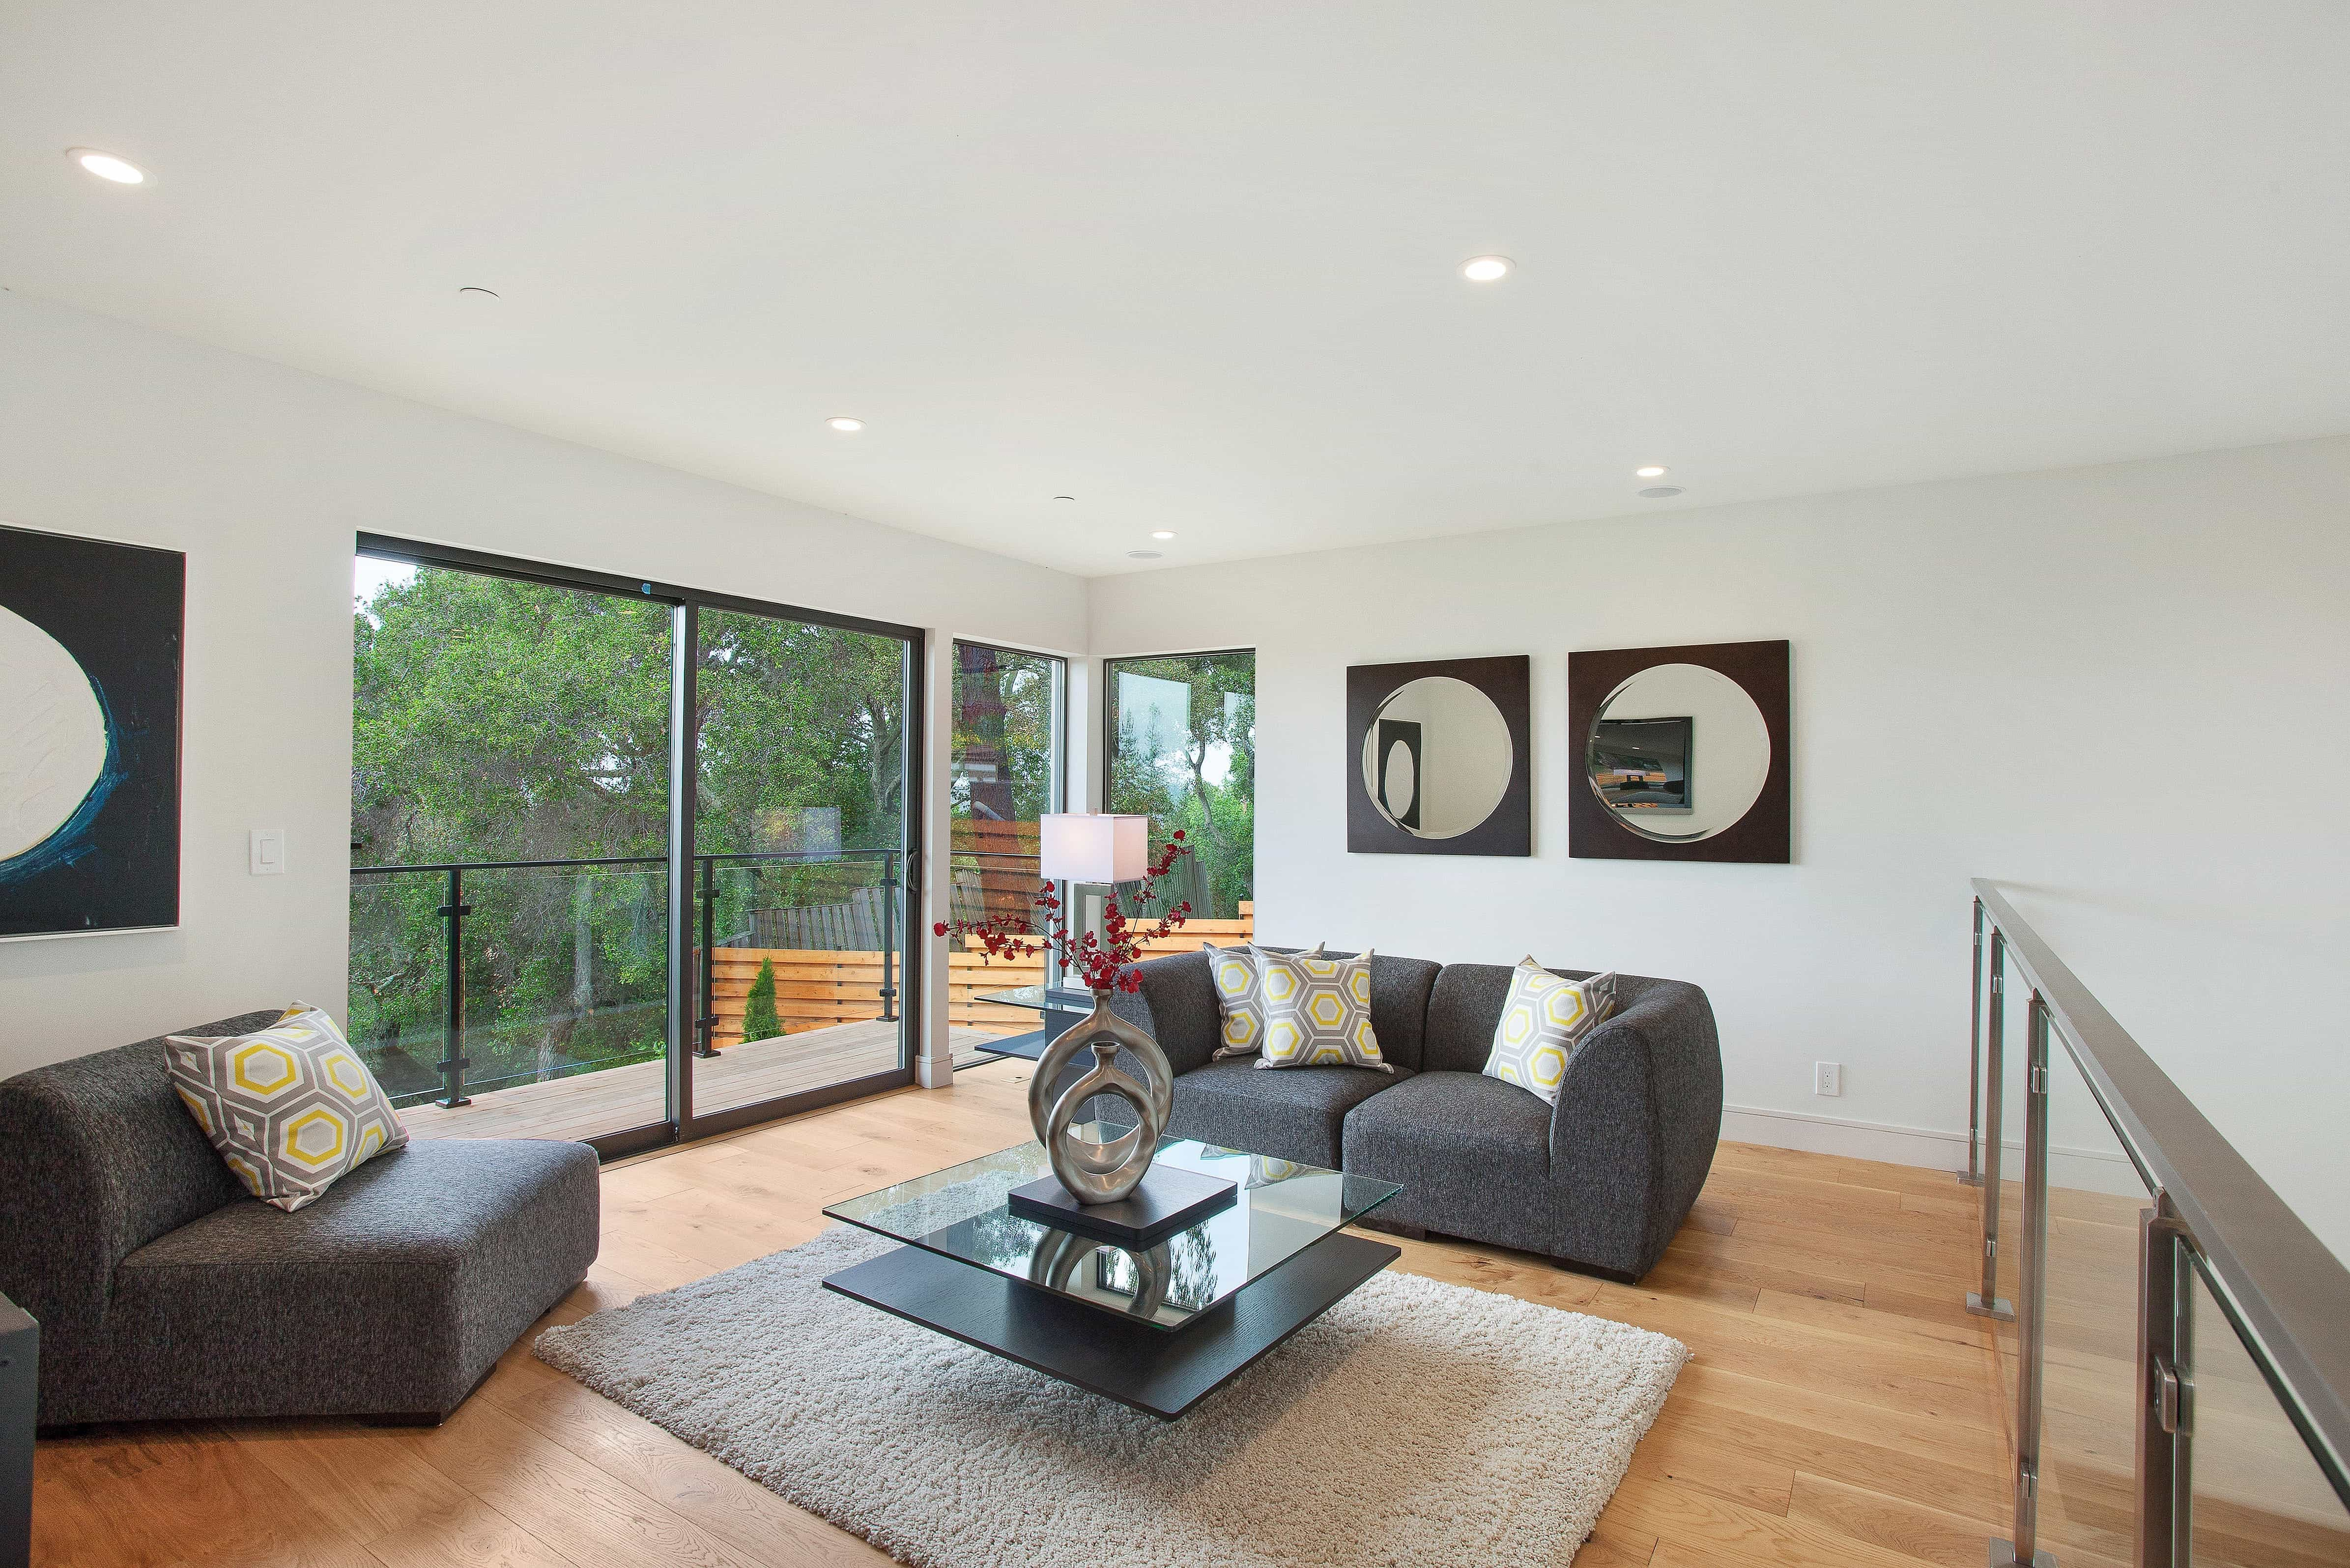 Modern Sitting Room Features Large Sliding Glass Doors (Image 20 of 27)